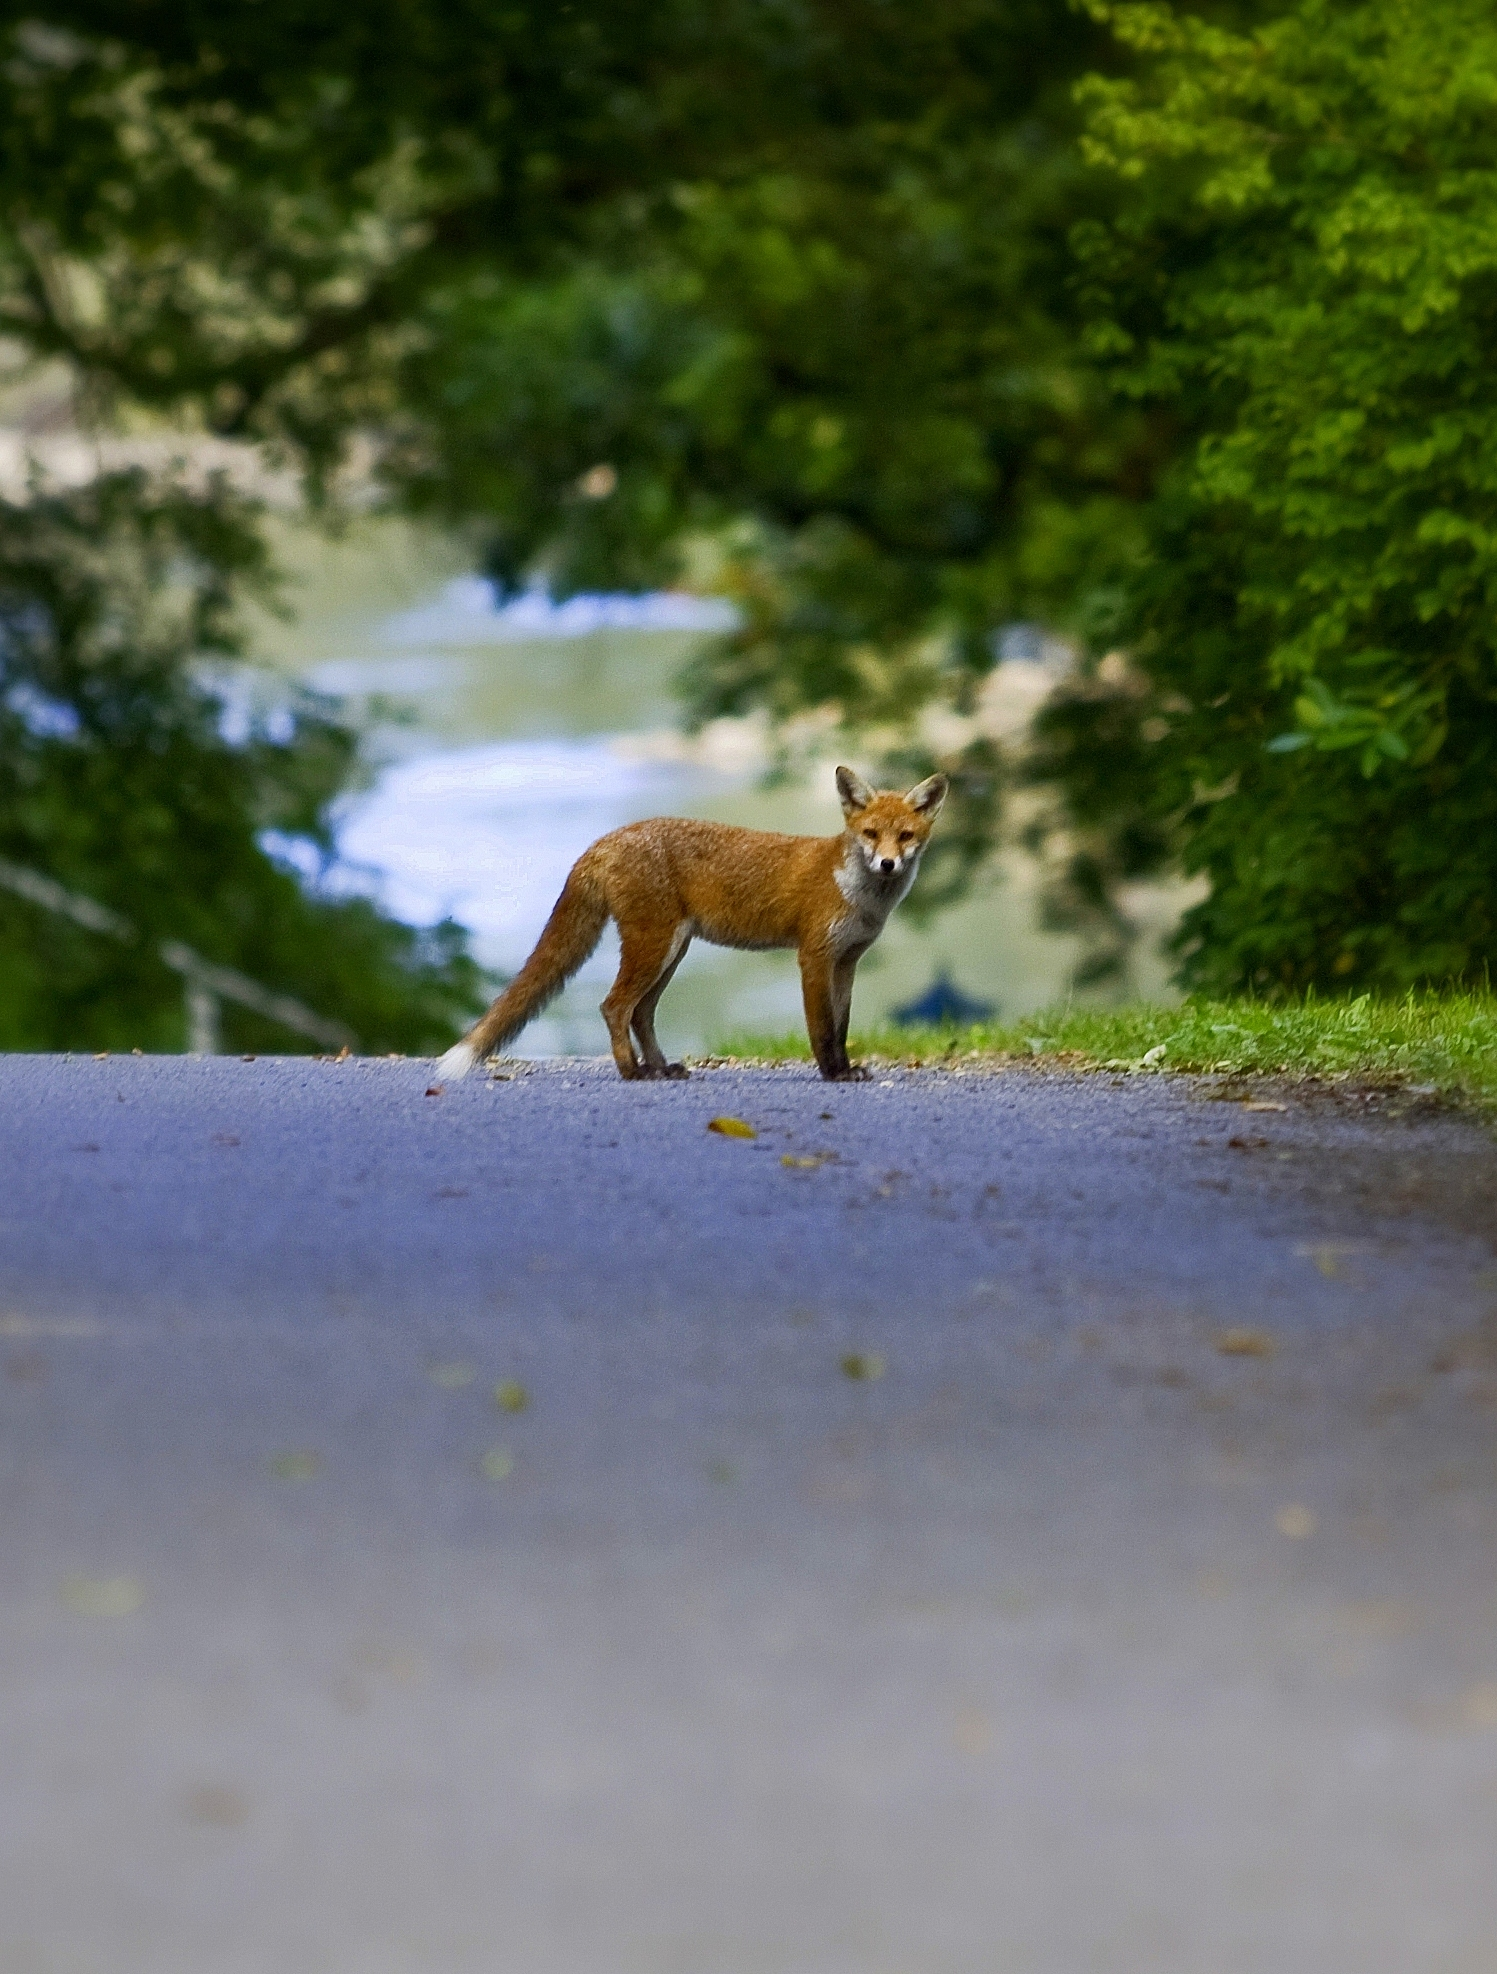 Fox on the Avenue, my first Fox photo - but its not Megan Fox !